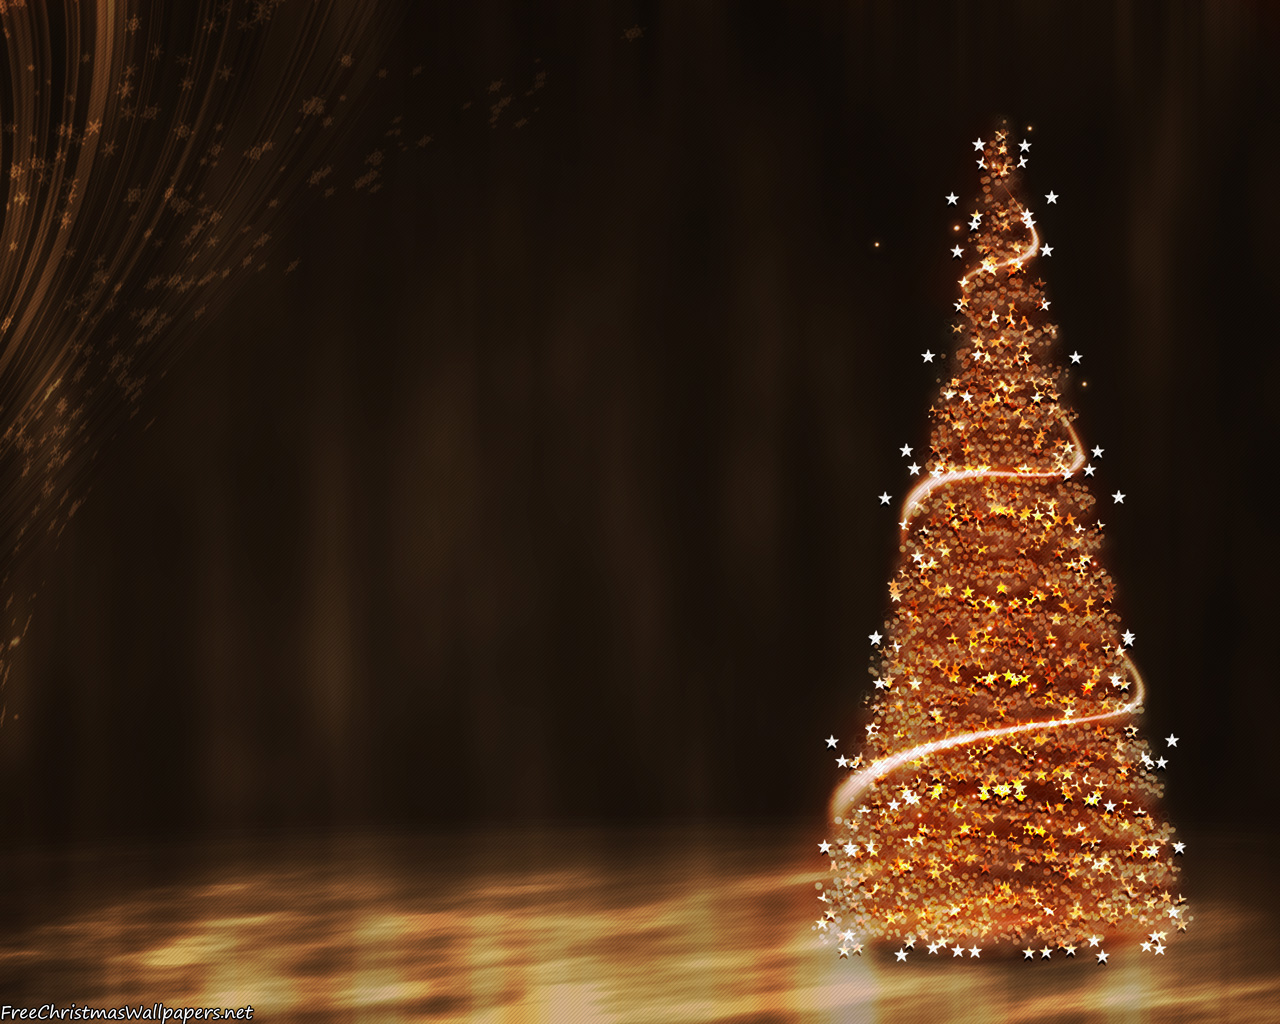 Christmas Tree Desktop Background - WallpaperSafari